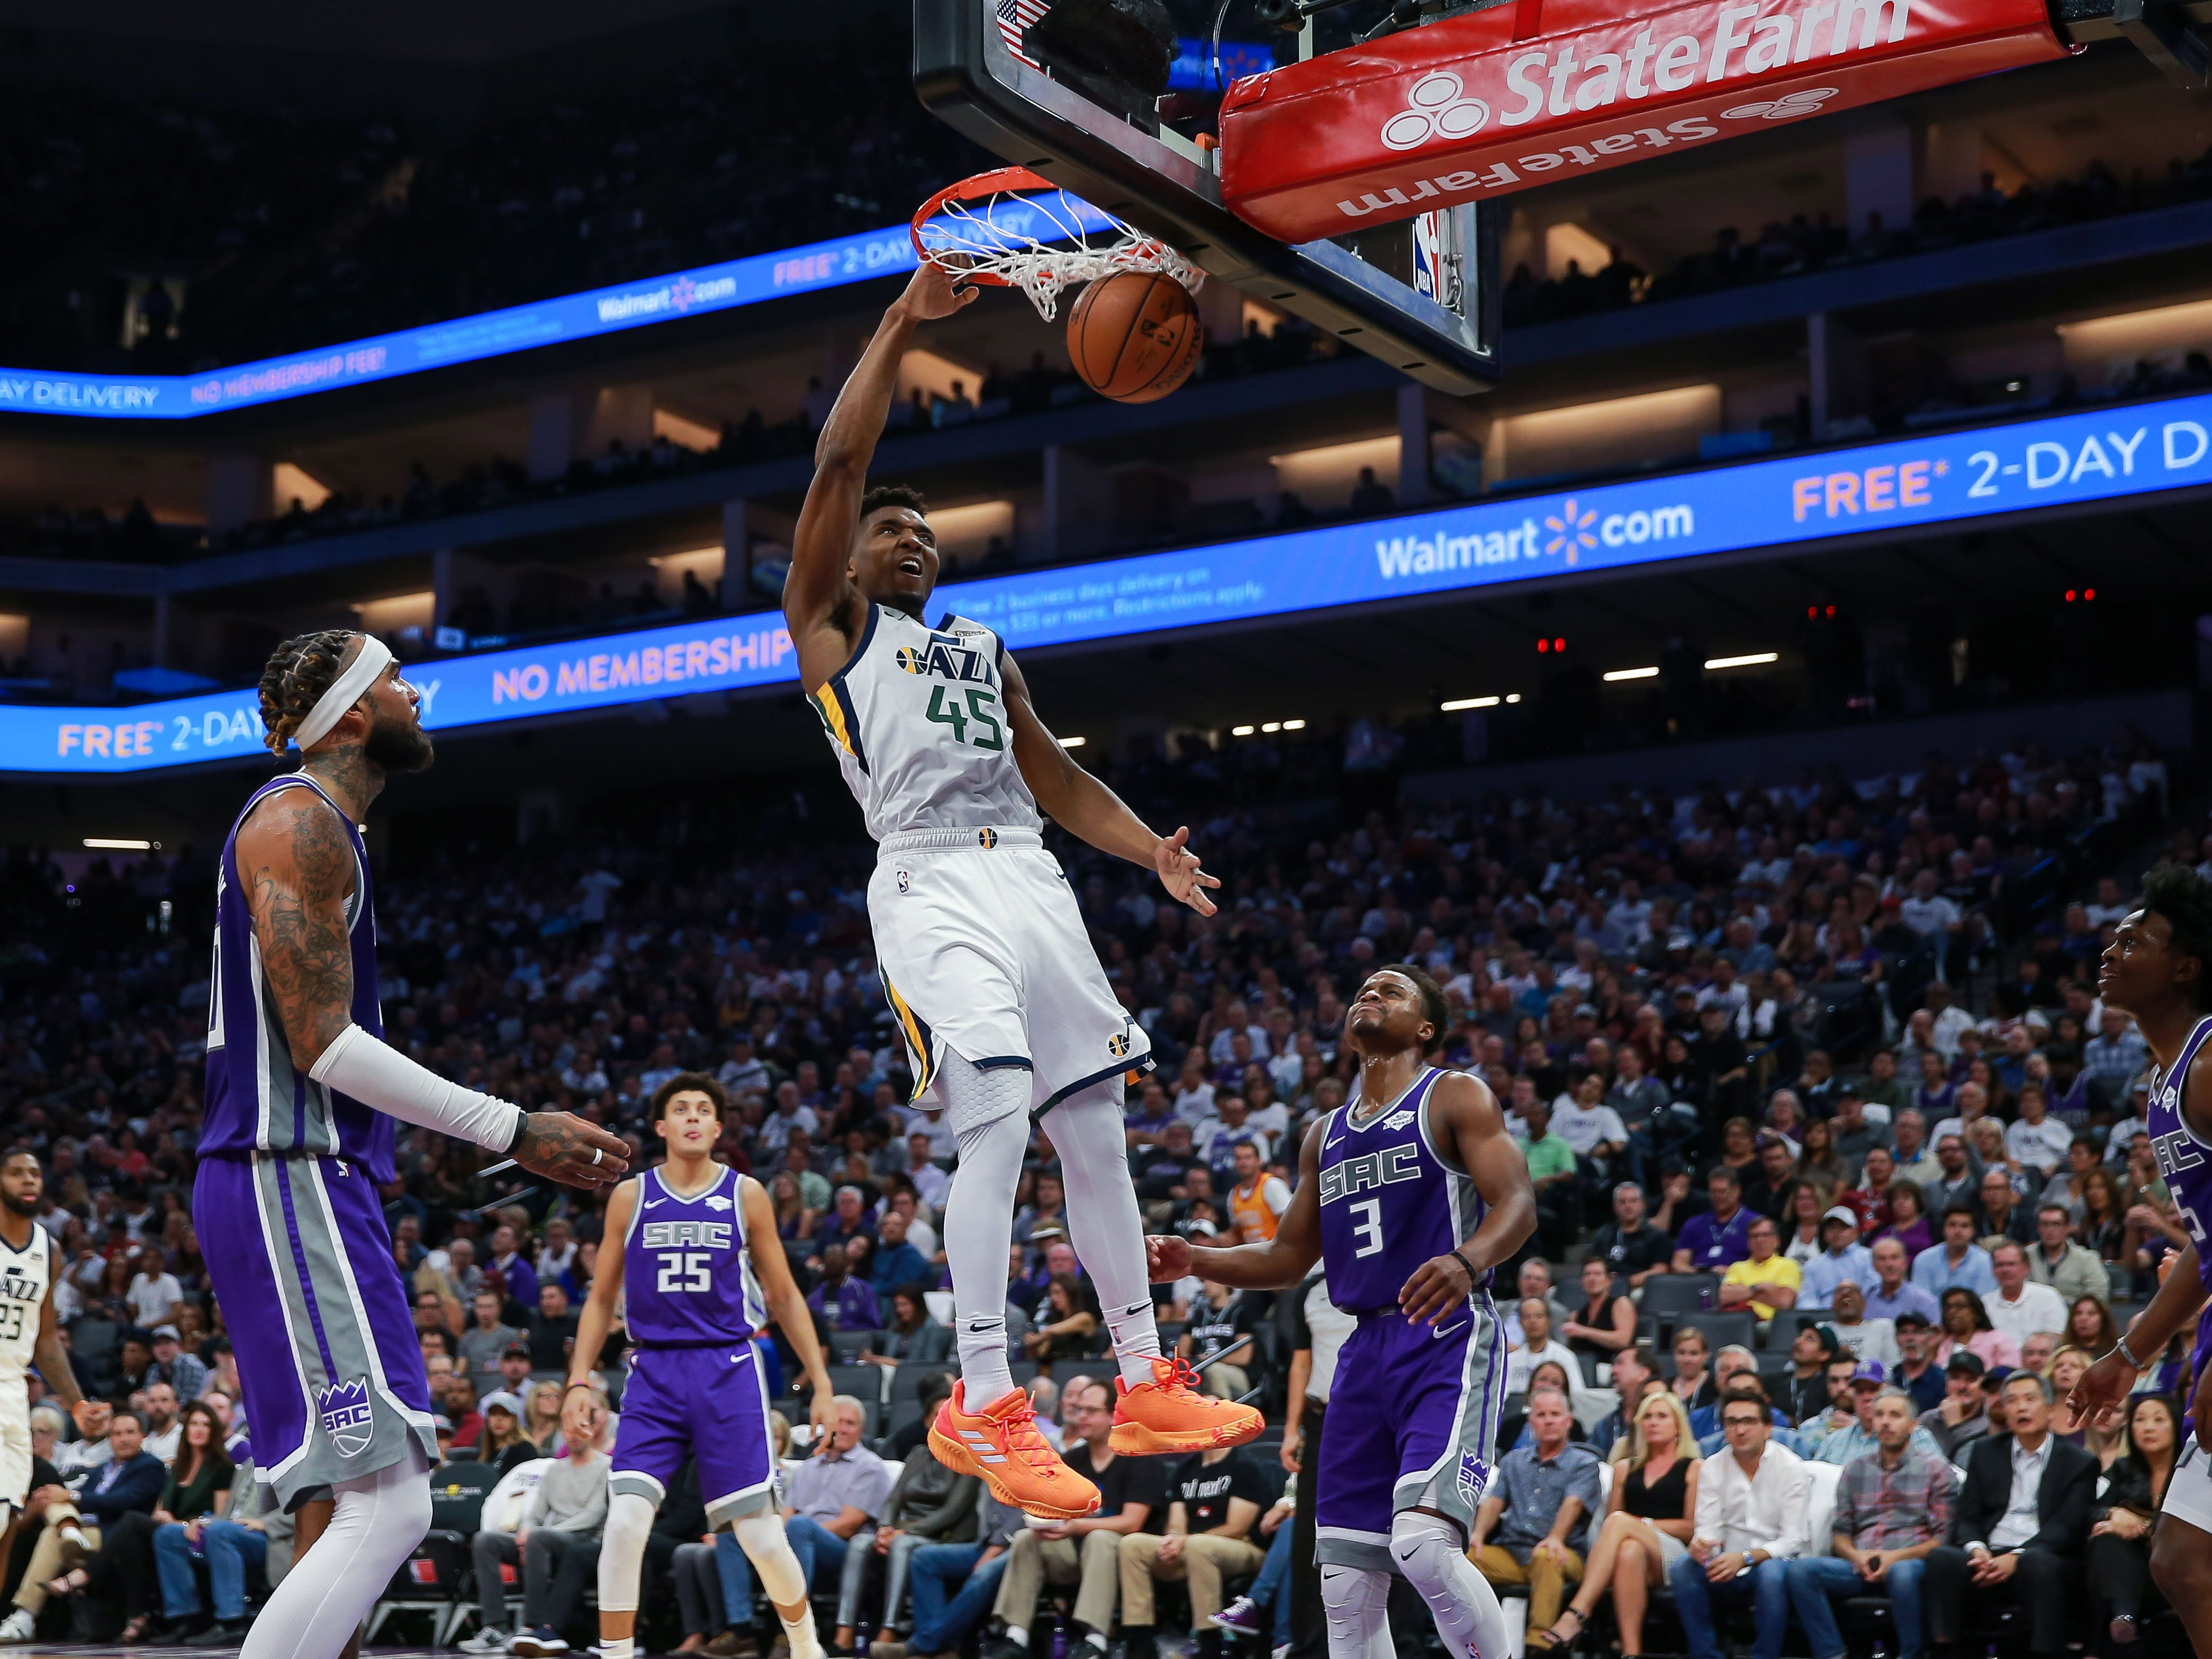 Oct. 17: Utah Jazz guard Donovan Mitchell dunks the ball against the Sacramento Kings during the fourth quarter at Golden 1 Center.